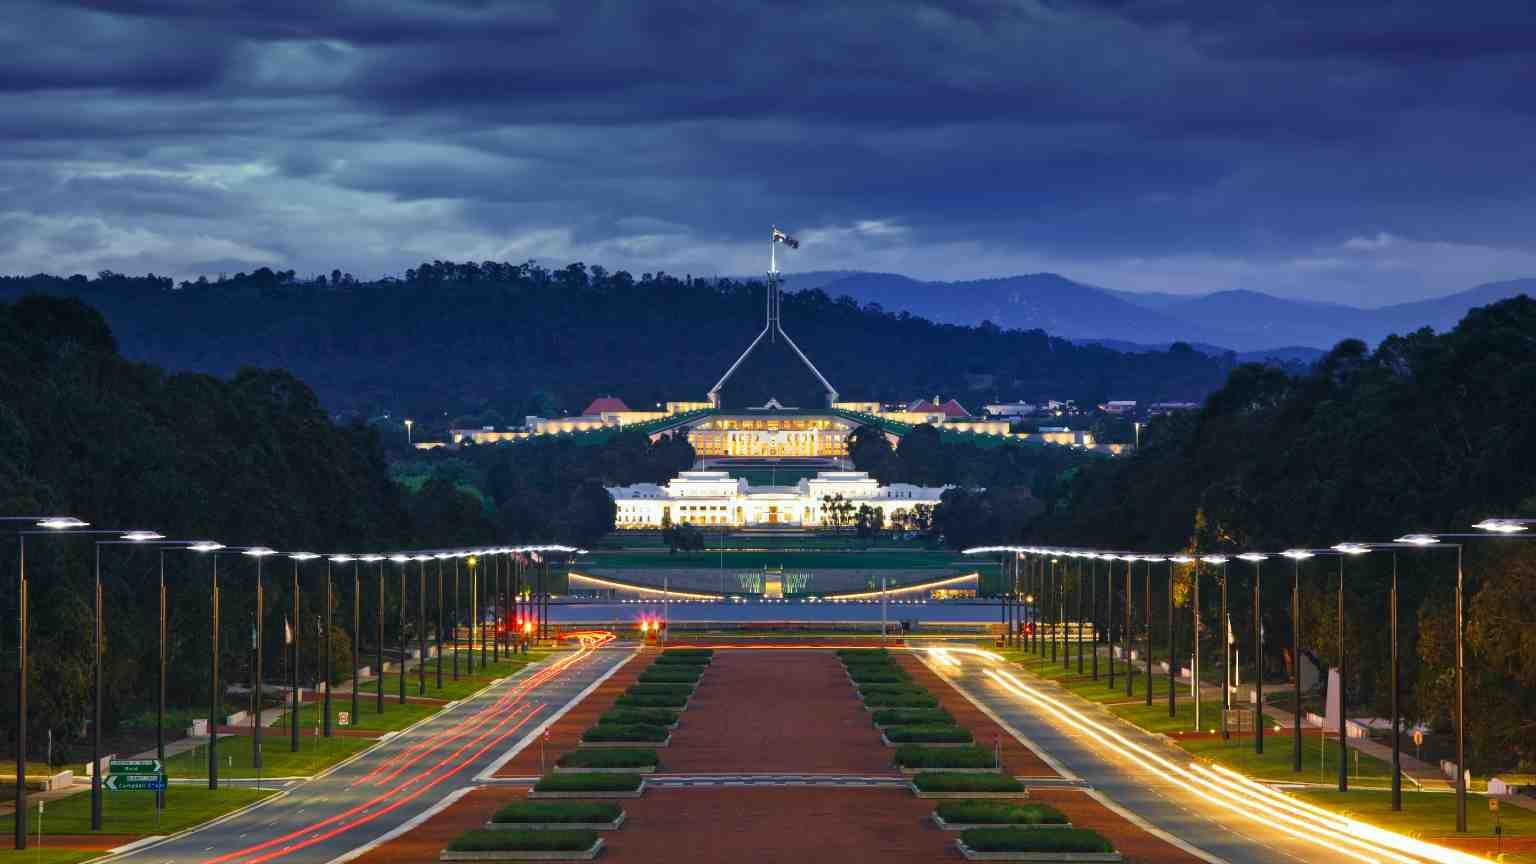 Parliament House in Canberra at night